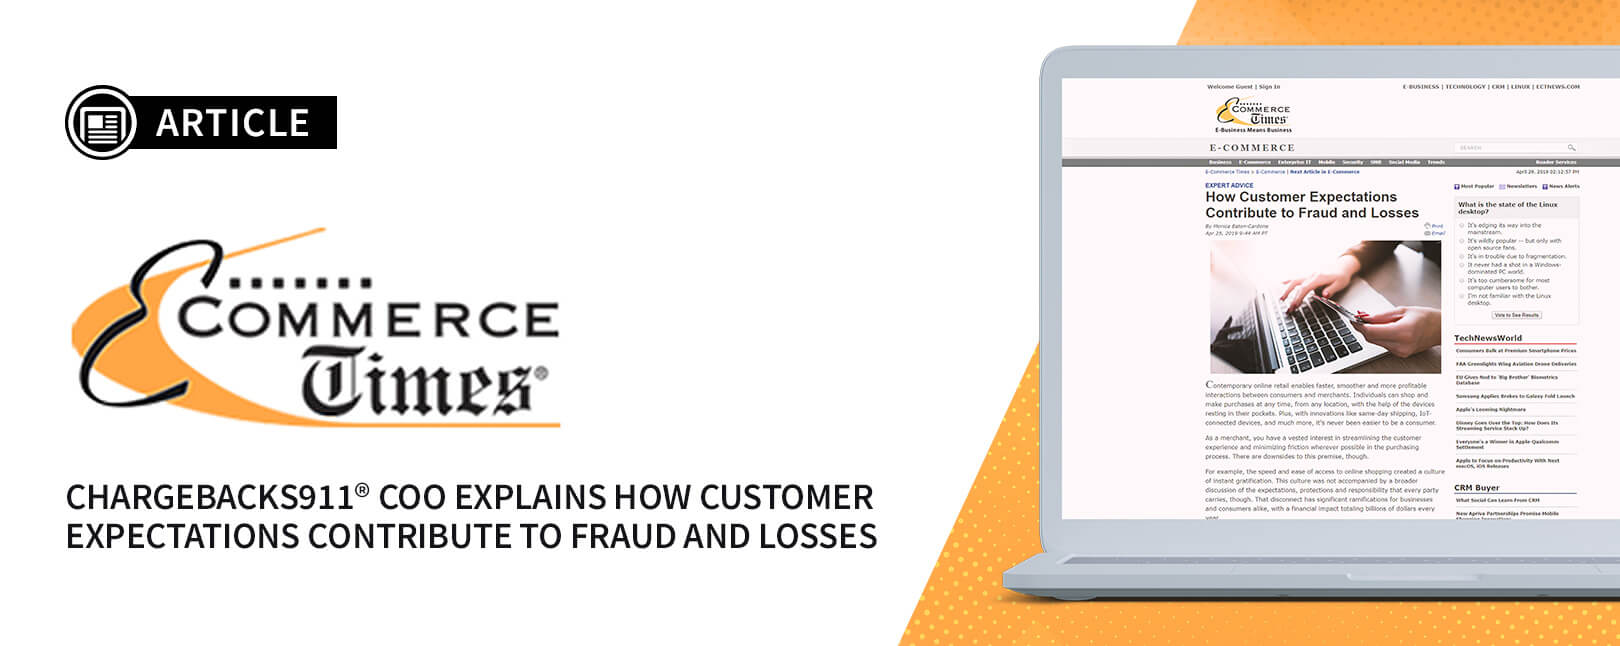 Press - E-Commerce Times - How Customer Expectations Contribute to Fraud and Losses-blog